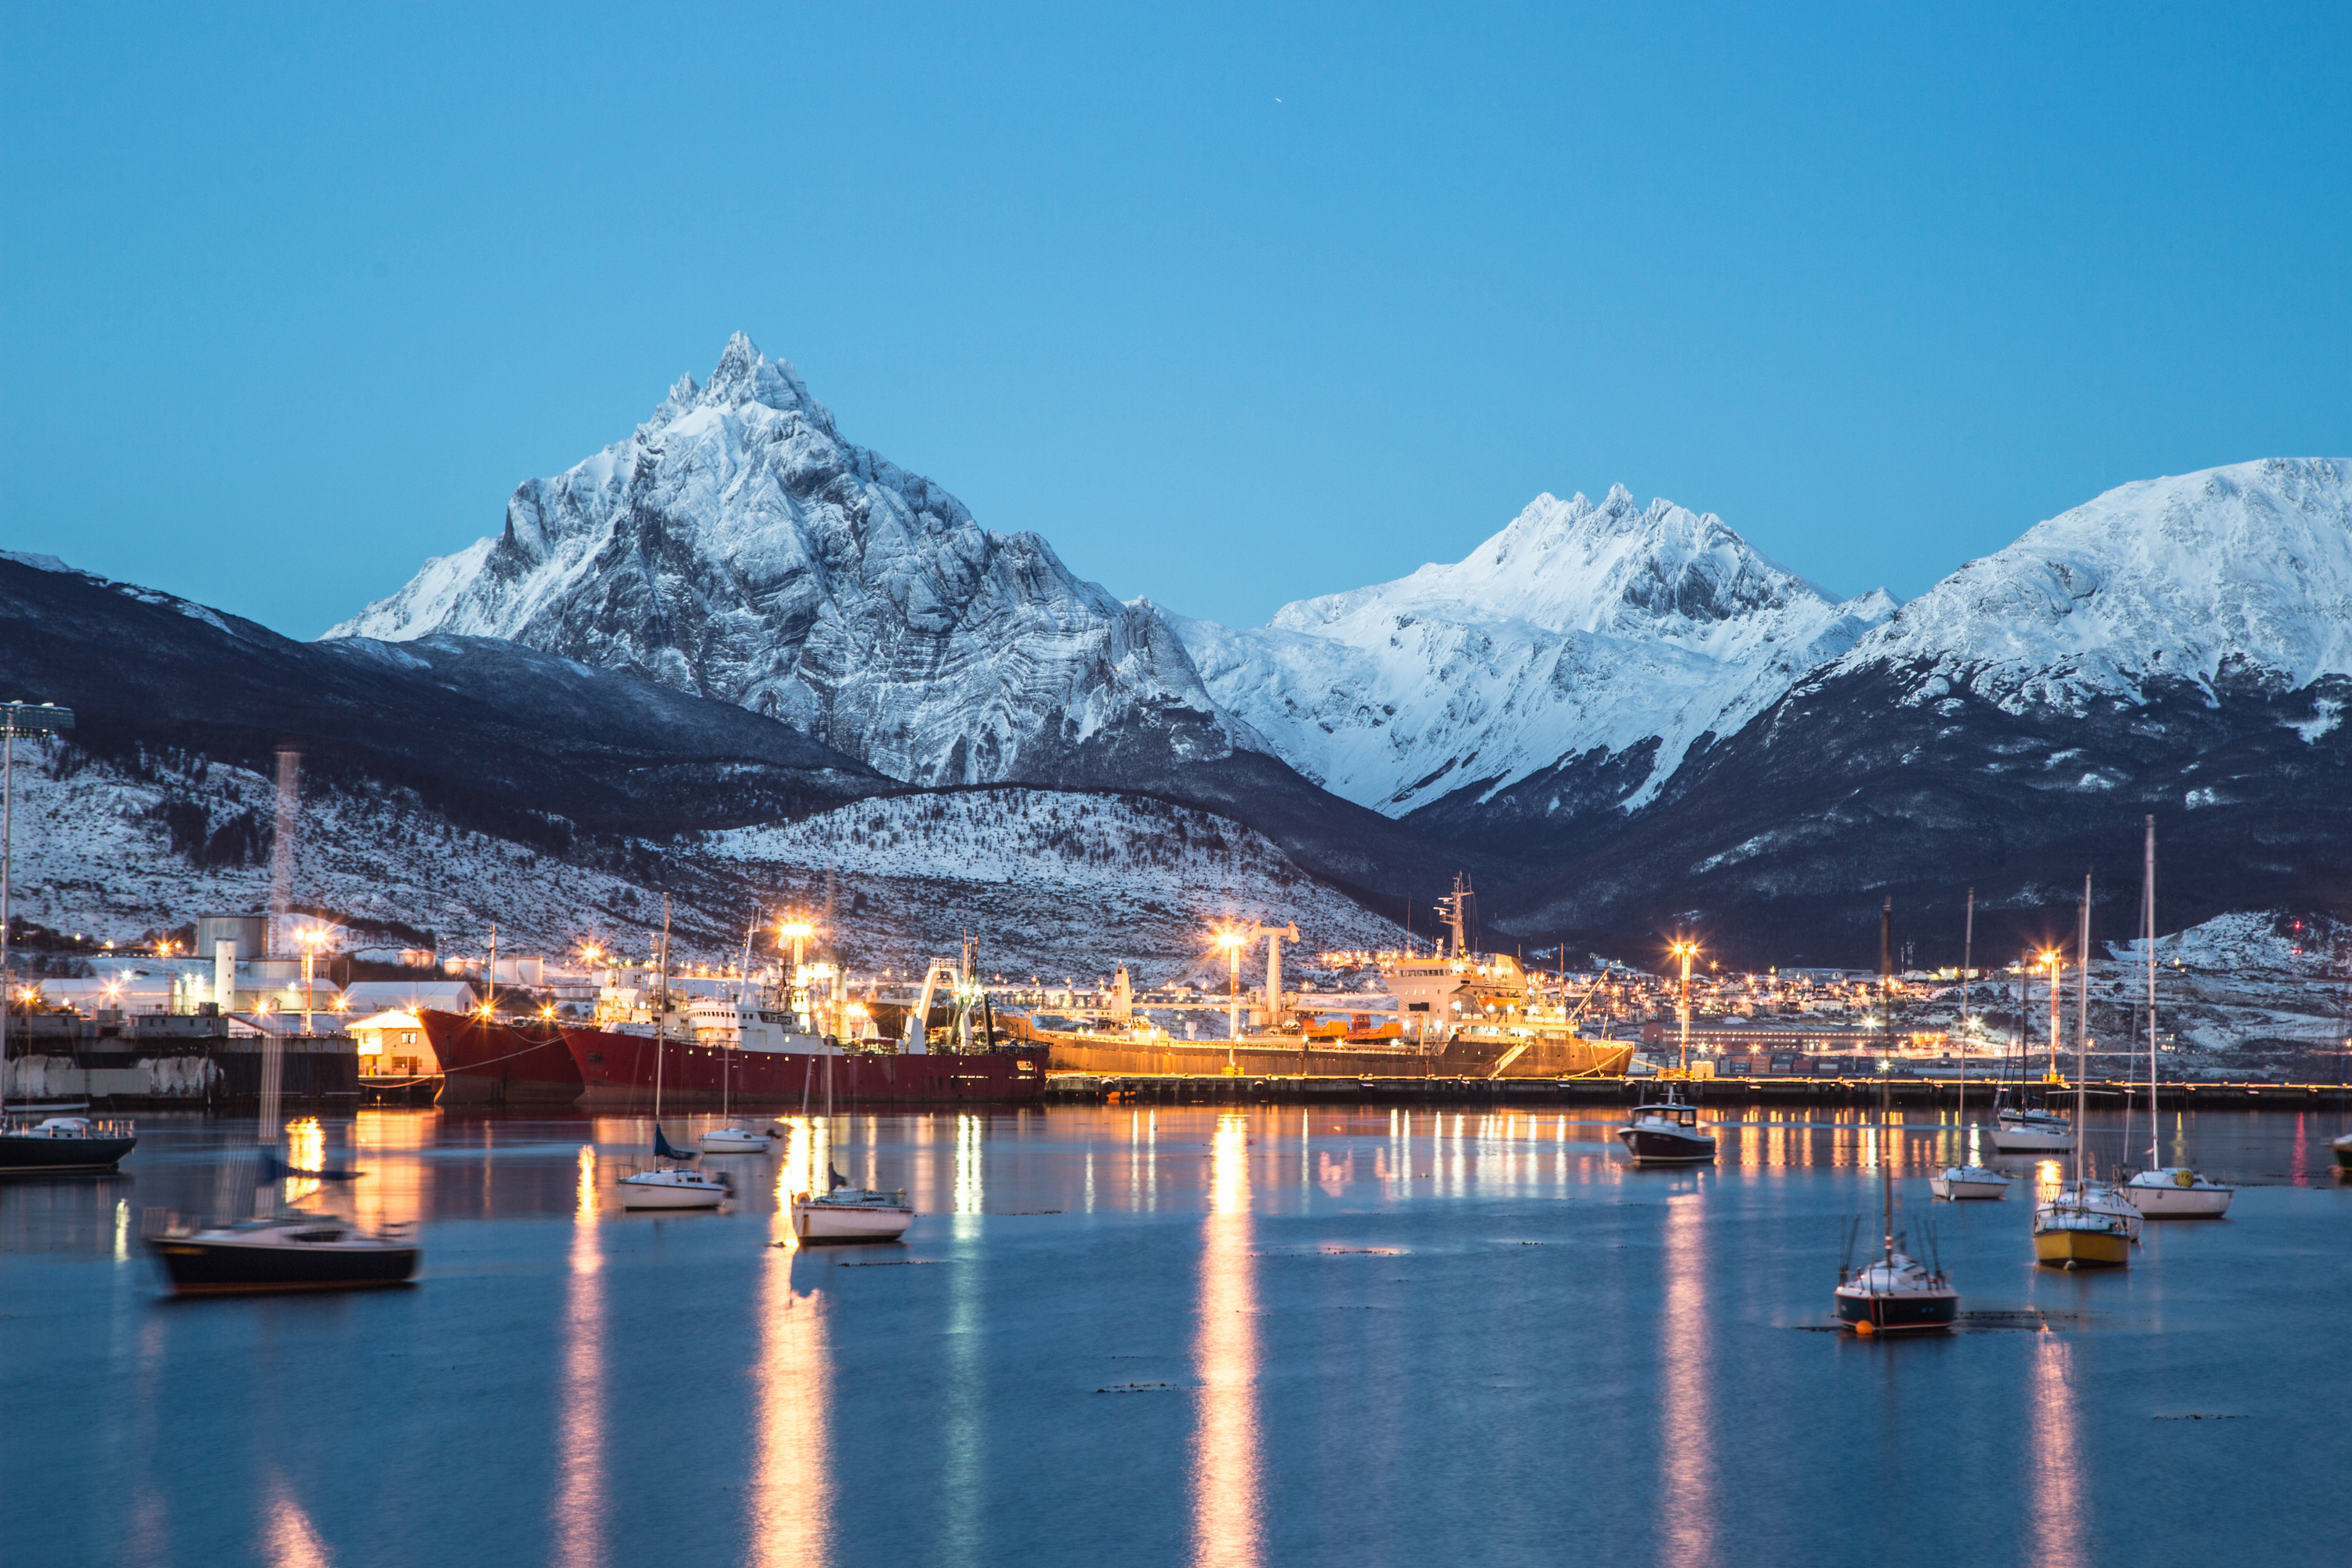 ushuaia with ships and mountains